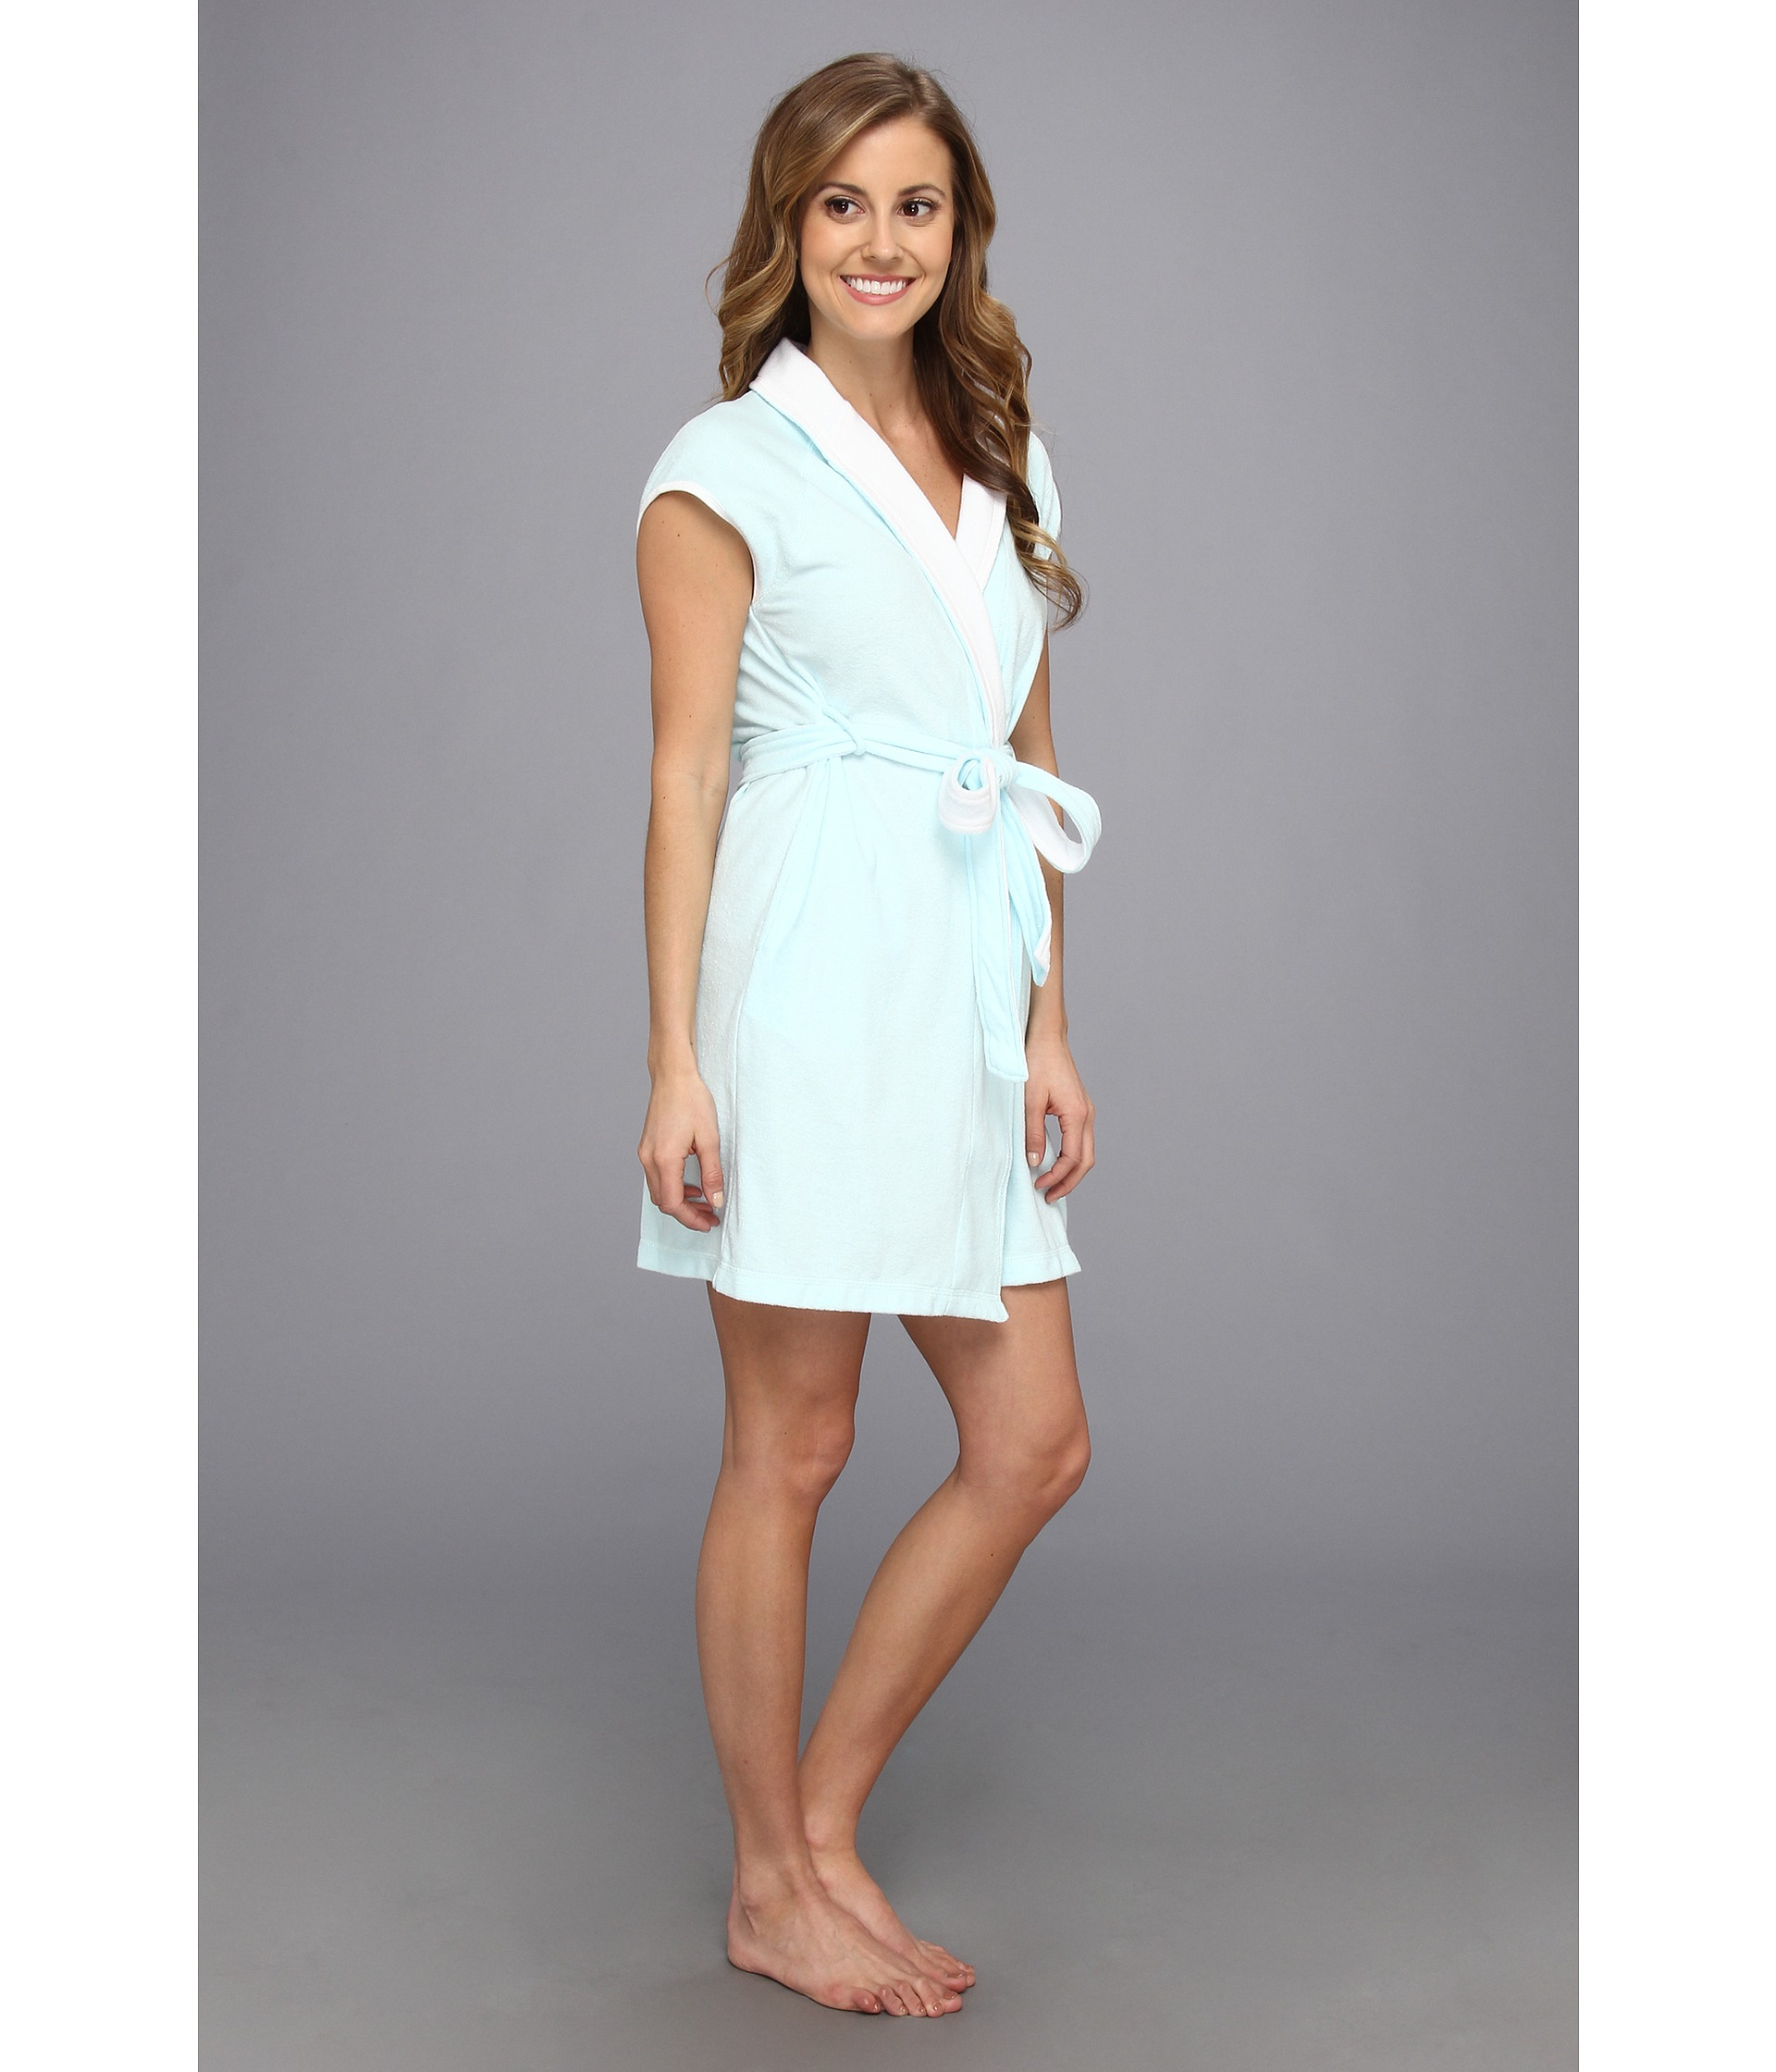 Lyst - Betsey Johnson Baby Terry Wifey Bridal Robe in Blue b0fe004af